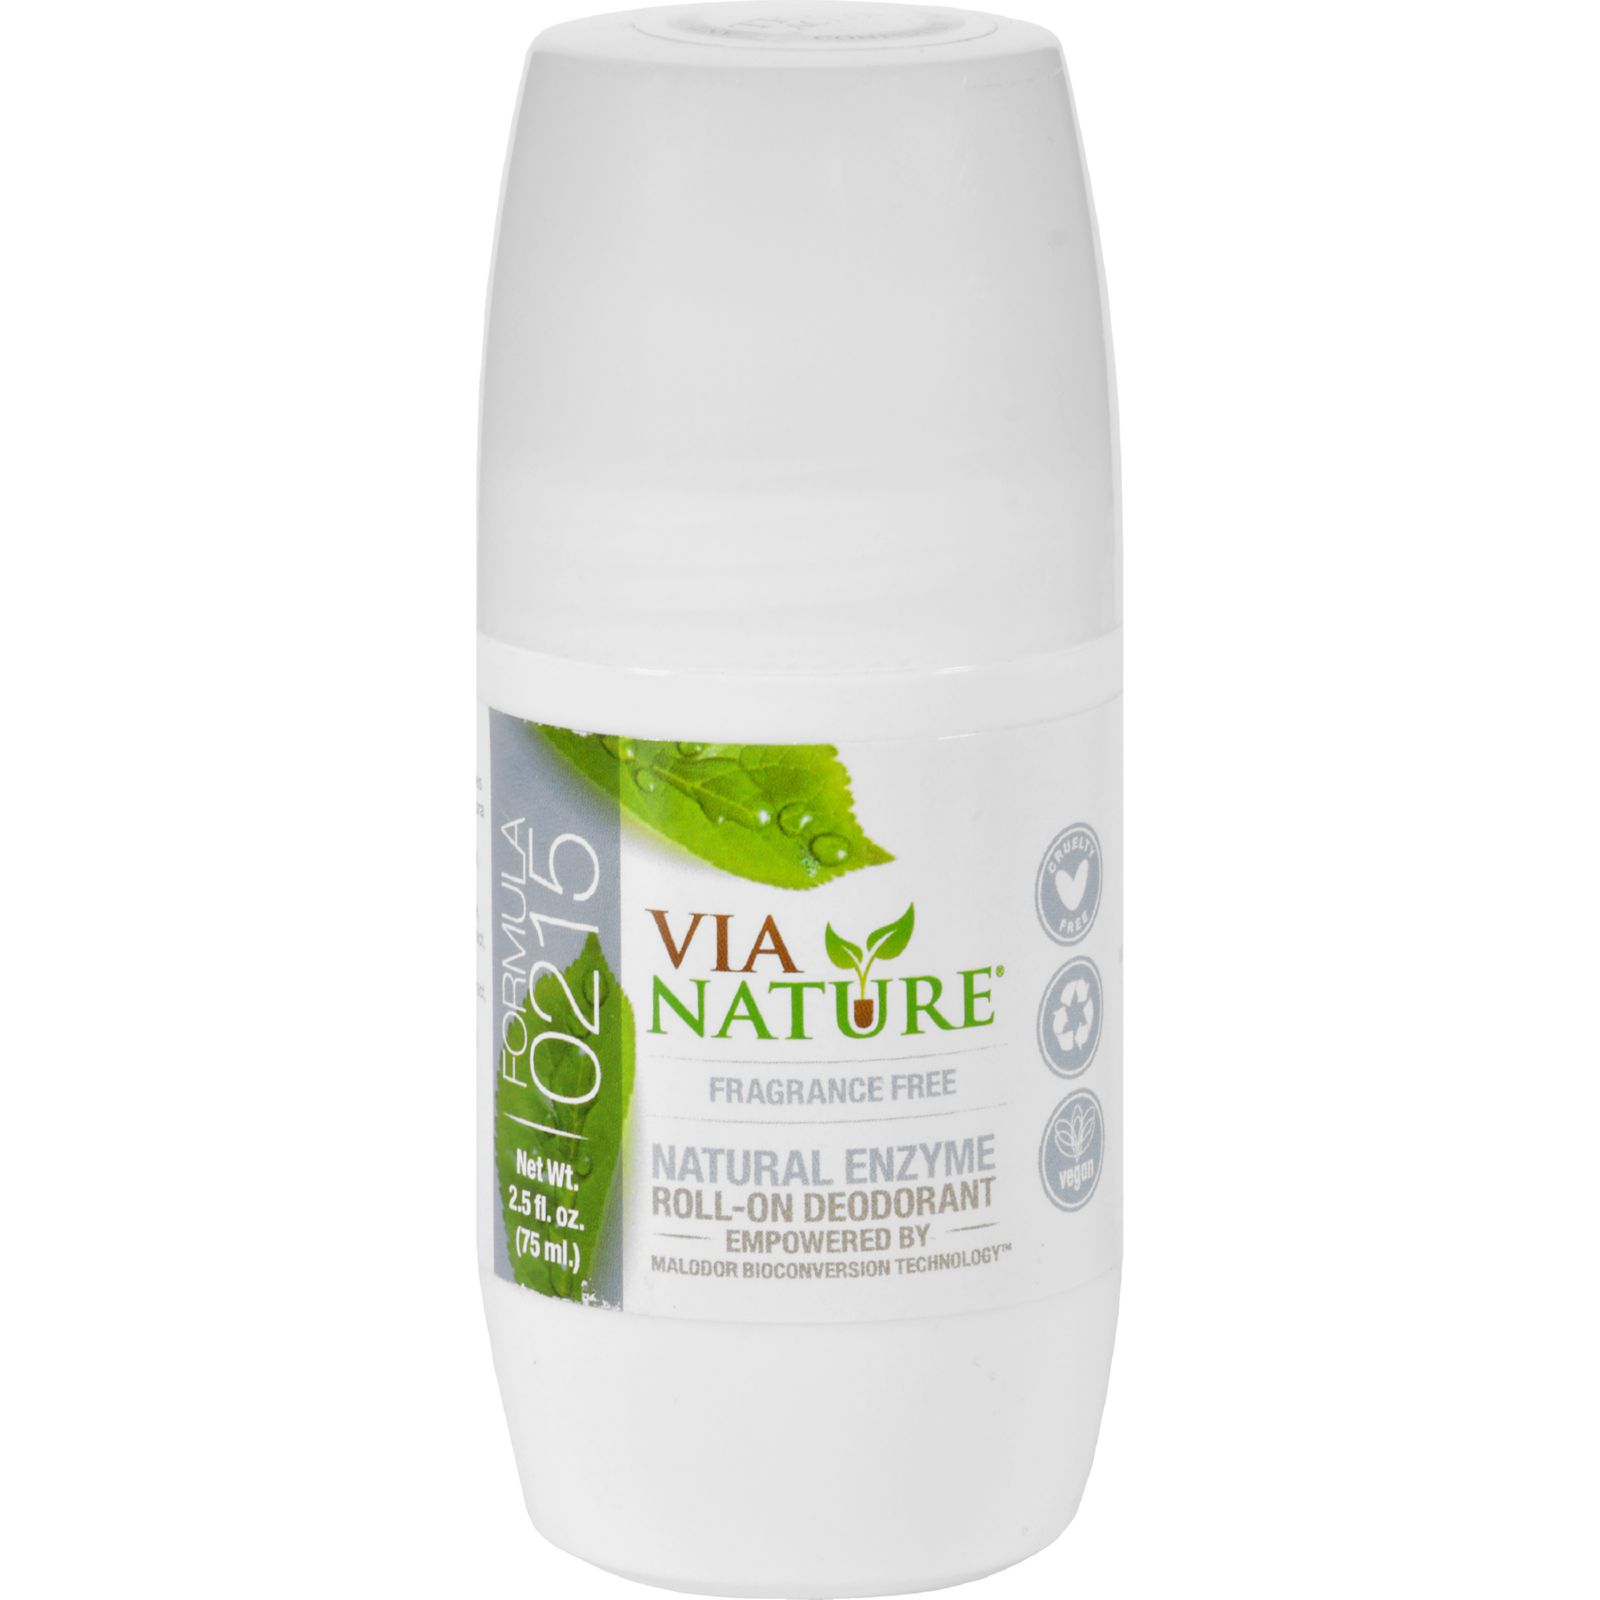 Via Nature Deodorant - Roll On - Frangrance Free - 2.5 Fl Oz